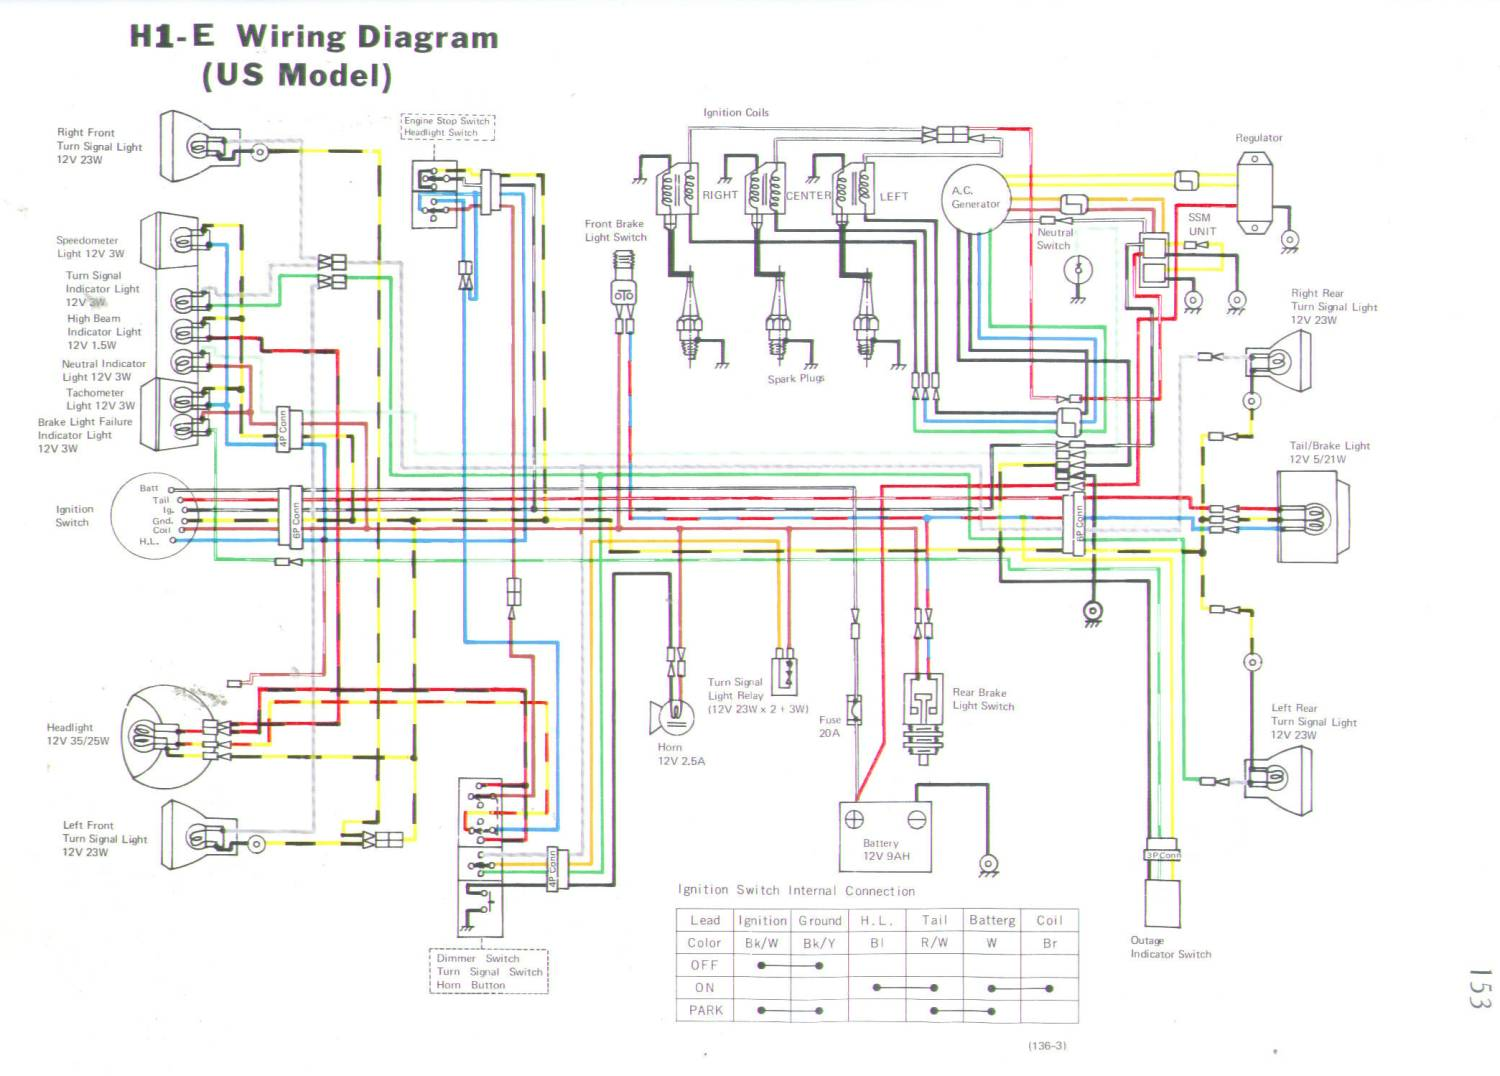 H1E kawasaki s2 wiring diagram kawasaki wiring diagrams instruction kawasaki wiring diagram at bayanpartner.co